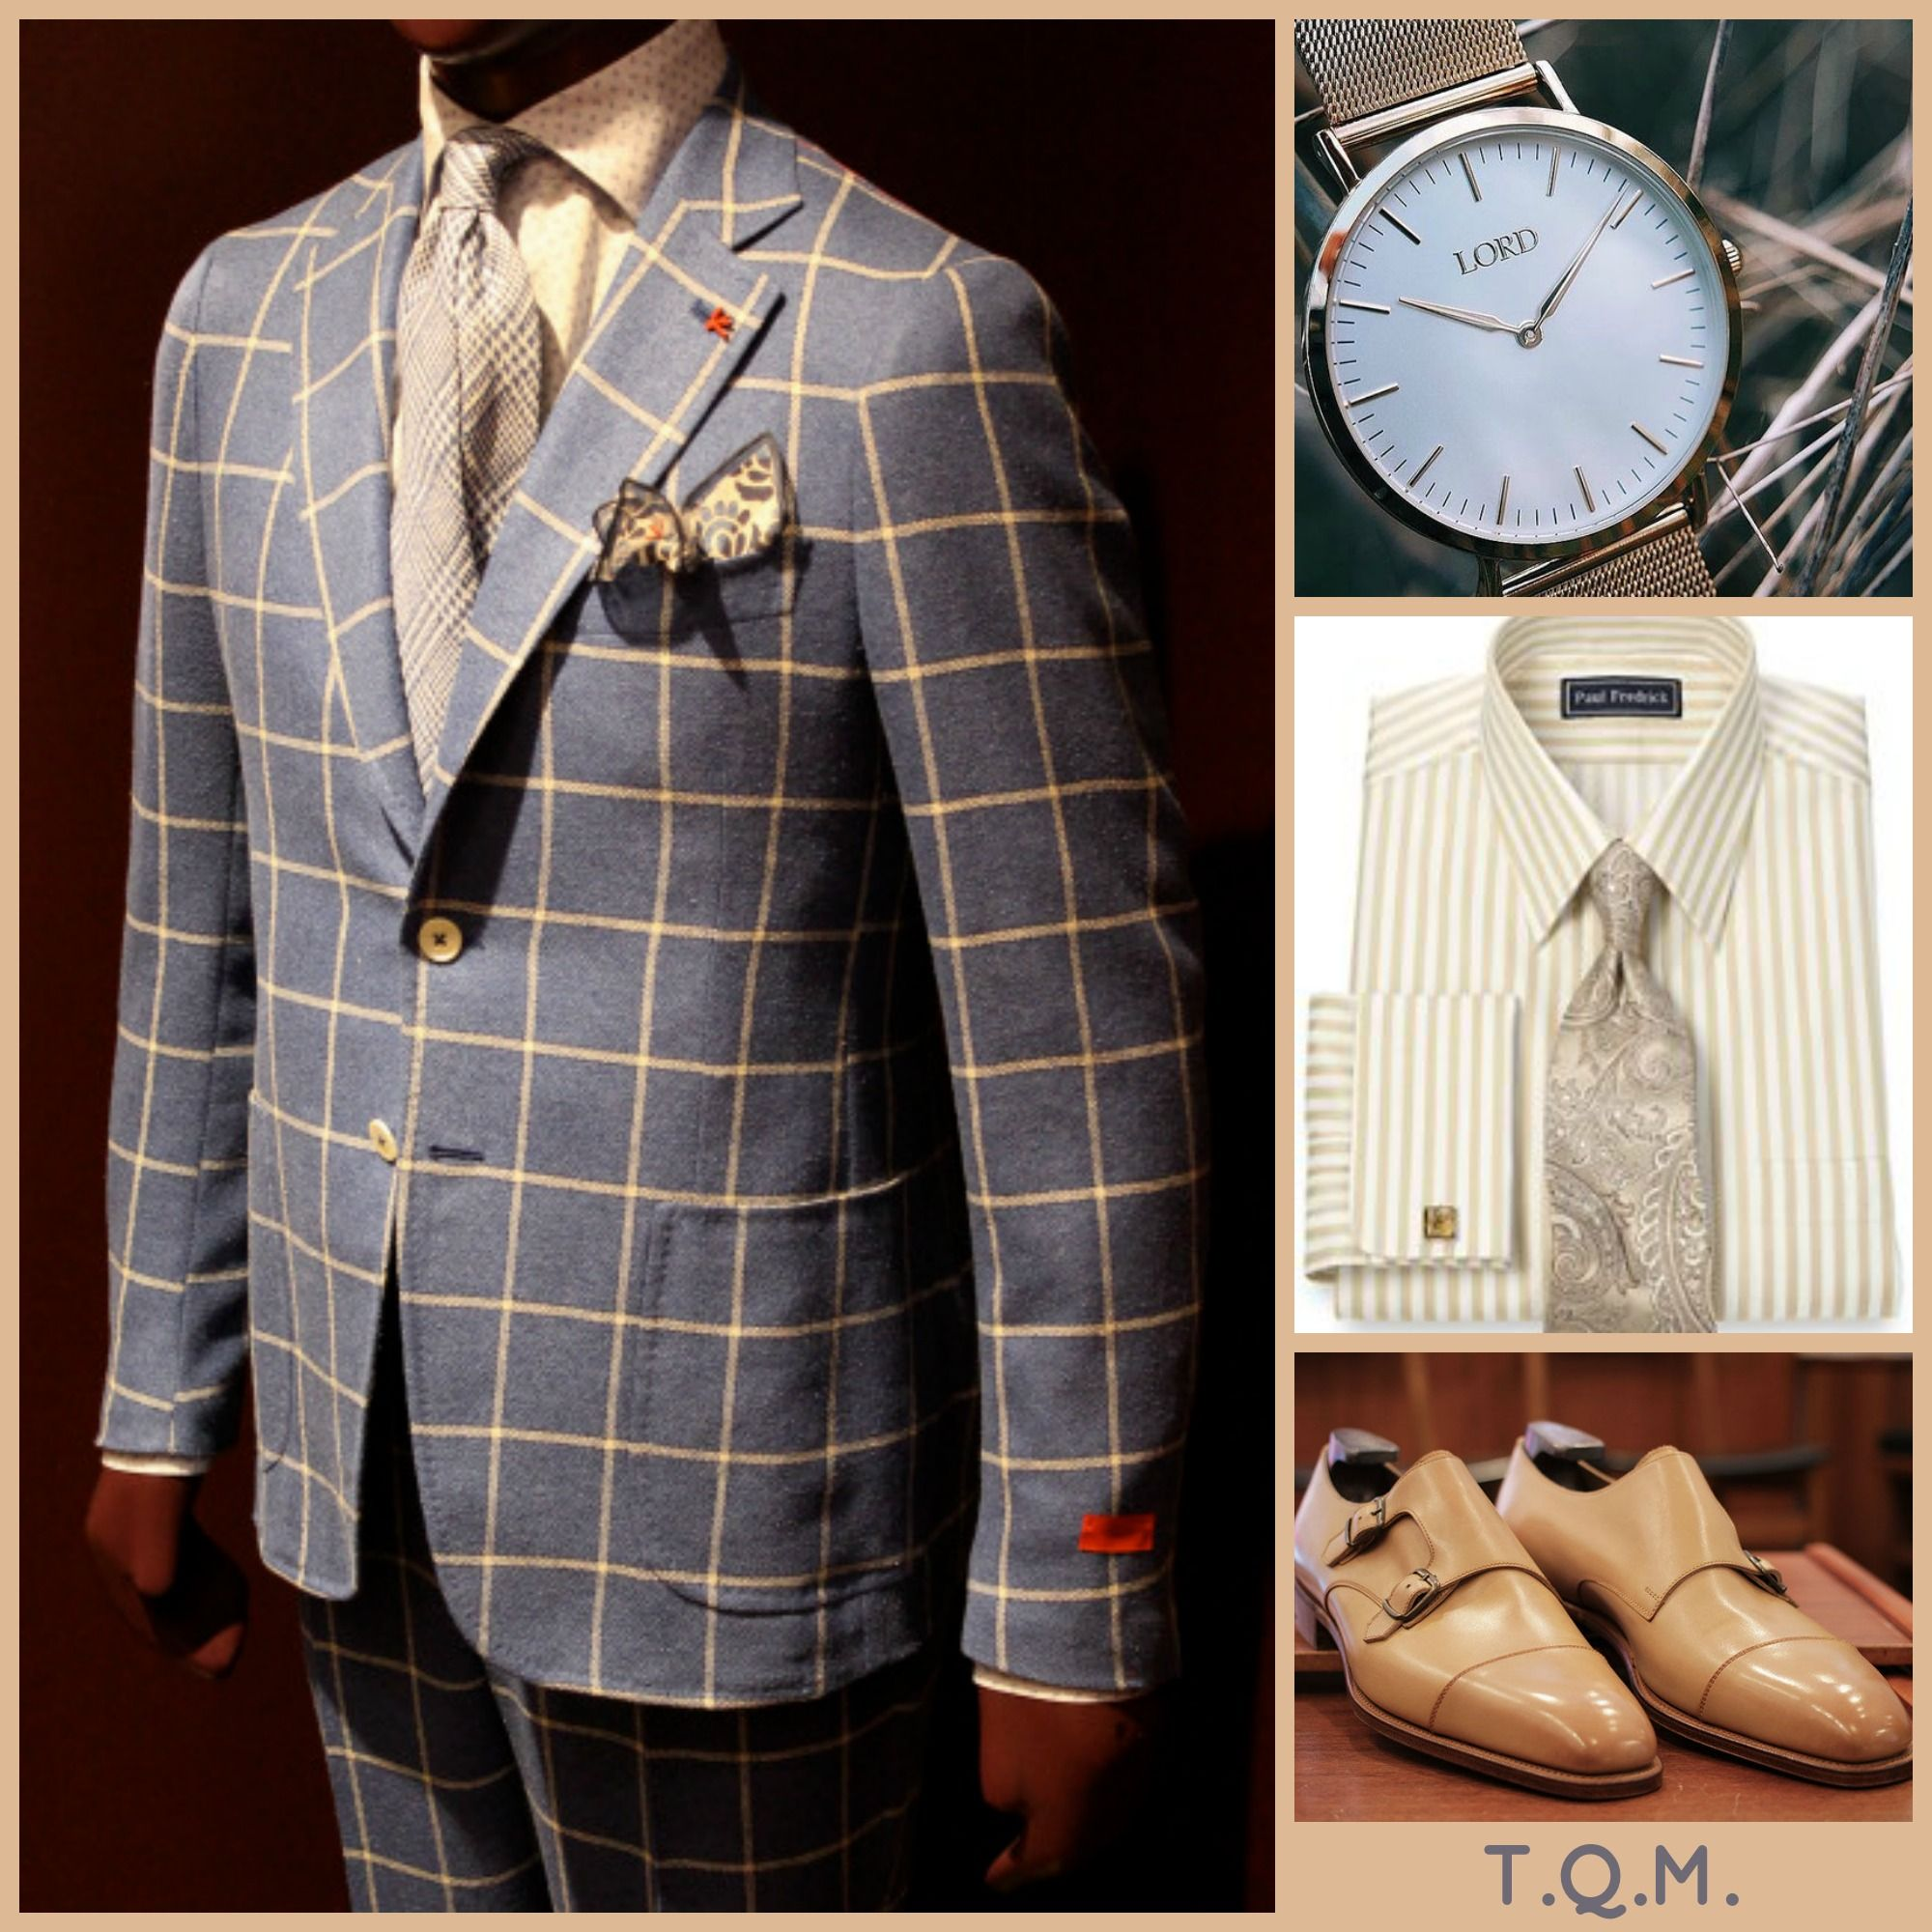 Sunday Special Occasion Style Isaia Suit Lord Watch Paul Fredrick Shirt Tie Option Alfred Sargent Shoes Mens Outfits Well Dressed Men Suits